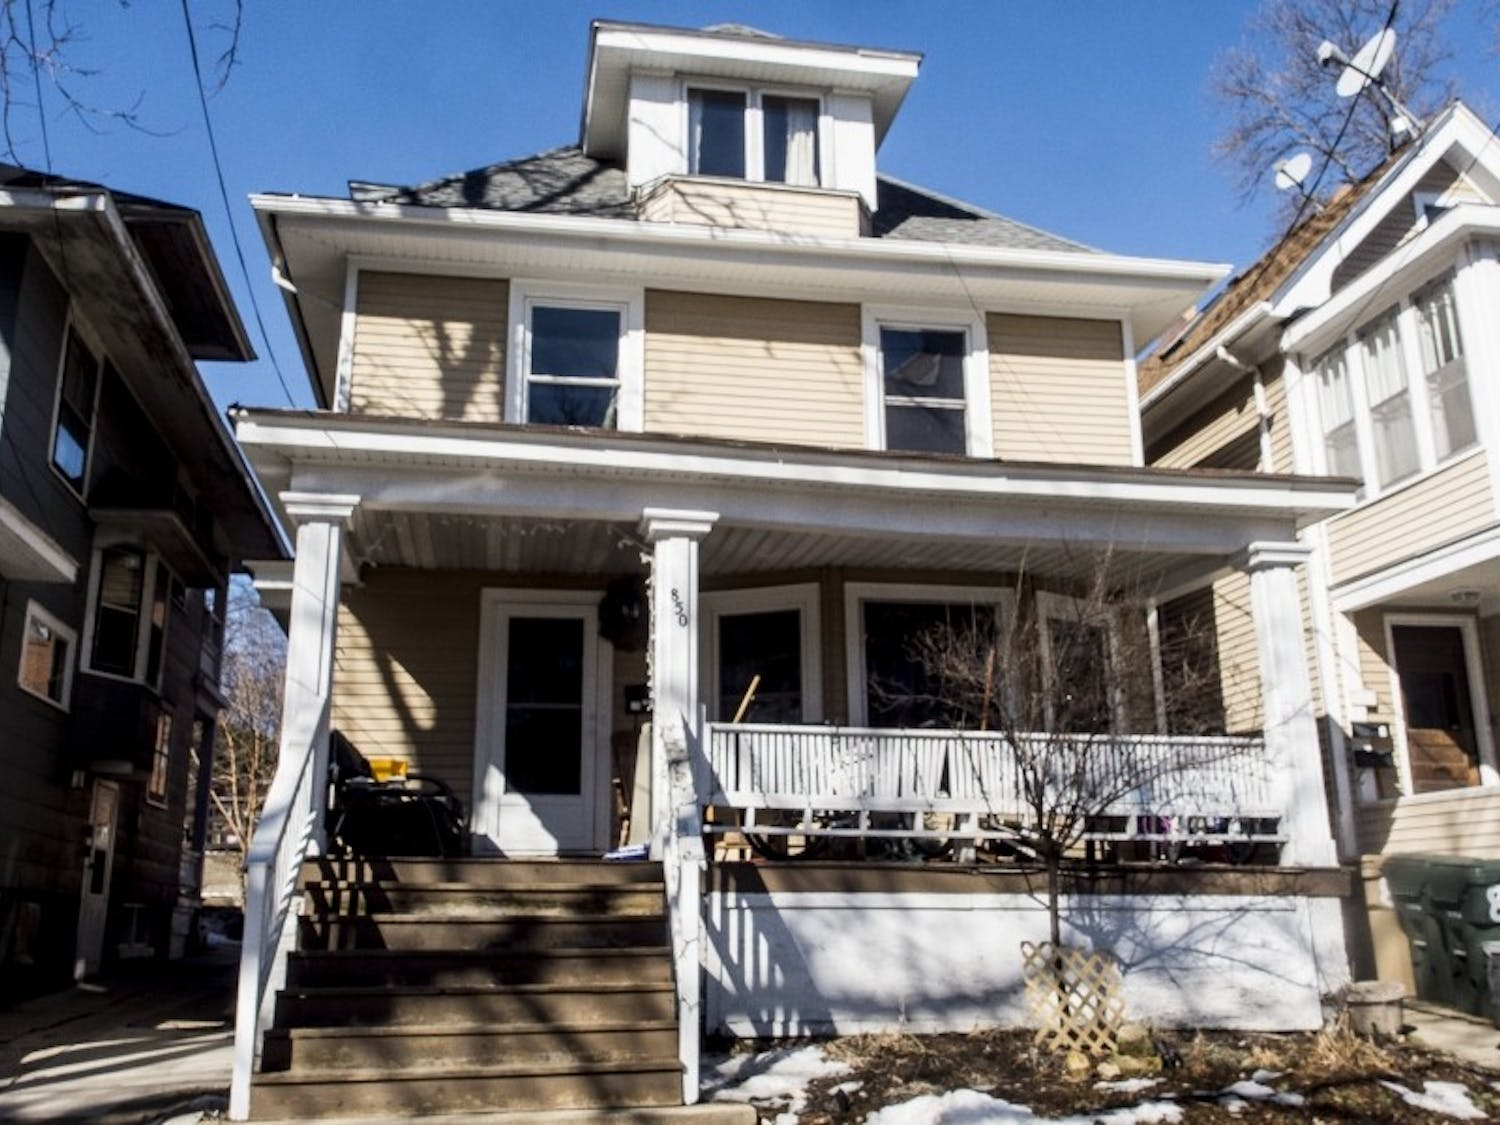 A city committee approved a new option landlord certification program that would take the place of numerous tenant-related rule changes approved by the state Legislature.